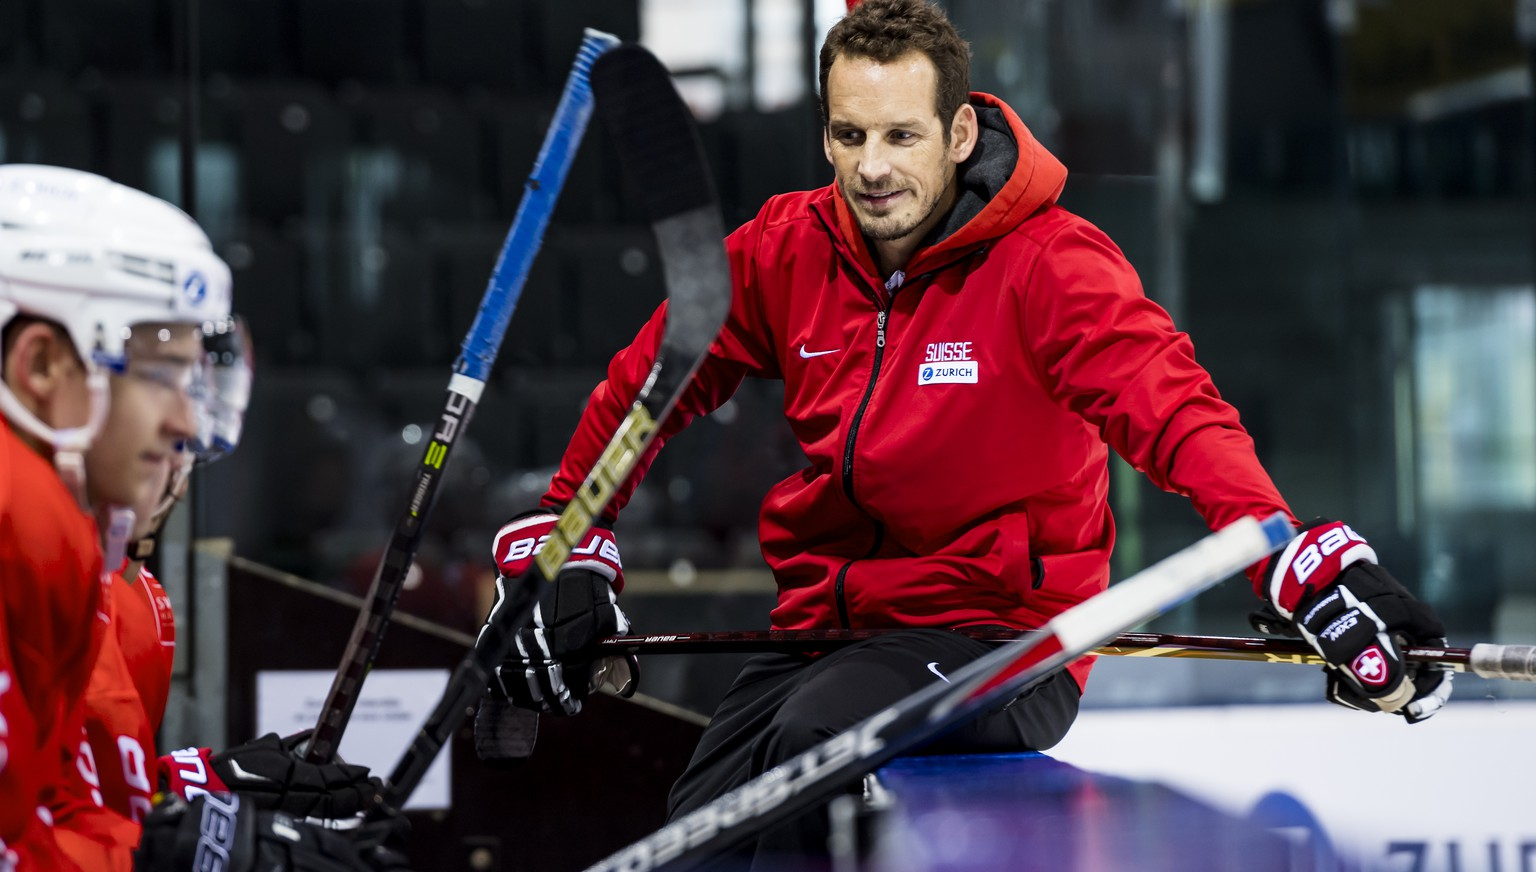 Patrick Fischer, head coach of Switzerland national ice hockey team, reacts during a training camp of Swiss national hockey team ahead the IIHF 2019 World Championship, at the ice stadium Les Vernets, in Geneva, Switzerland, Wednesday, April 24, 2019. (KEYSTONE/Jean-Christophe Bott)